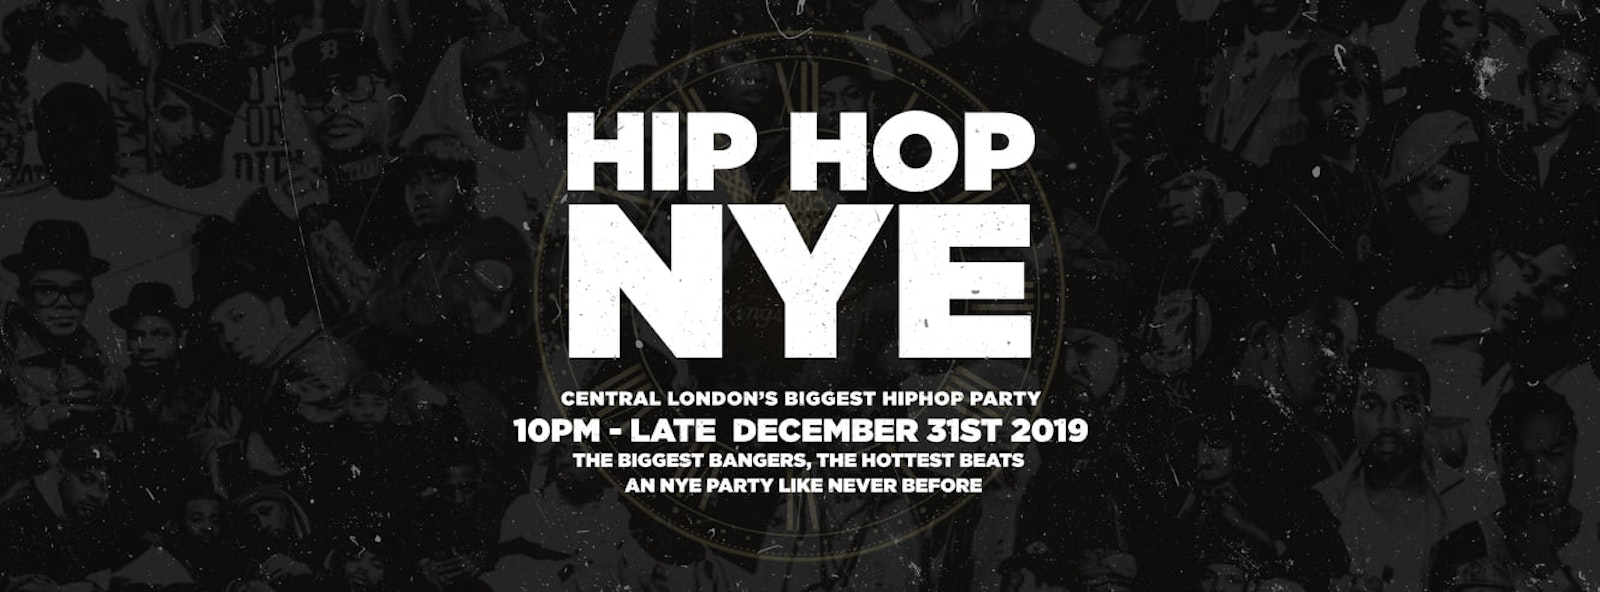 The Hip Hop New Years Eve 2019 – London NYE | TICKETS OUT NOW!